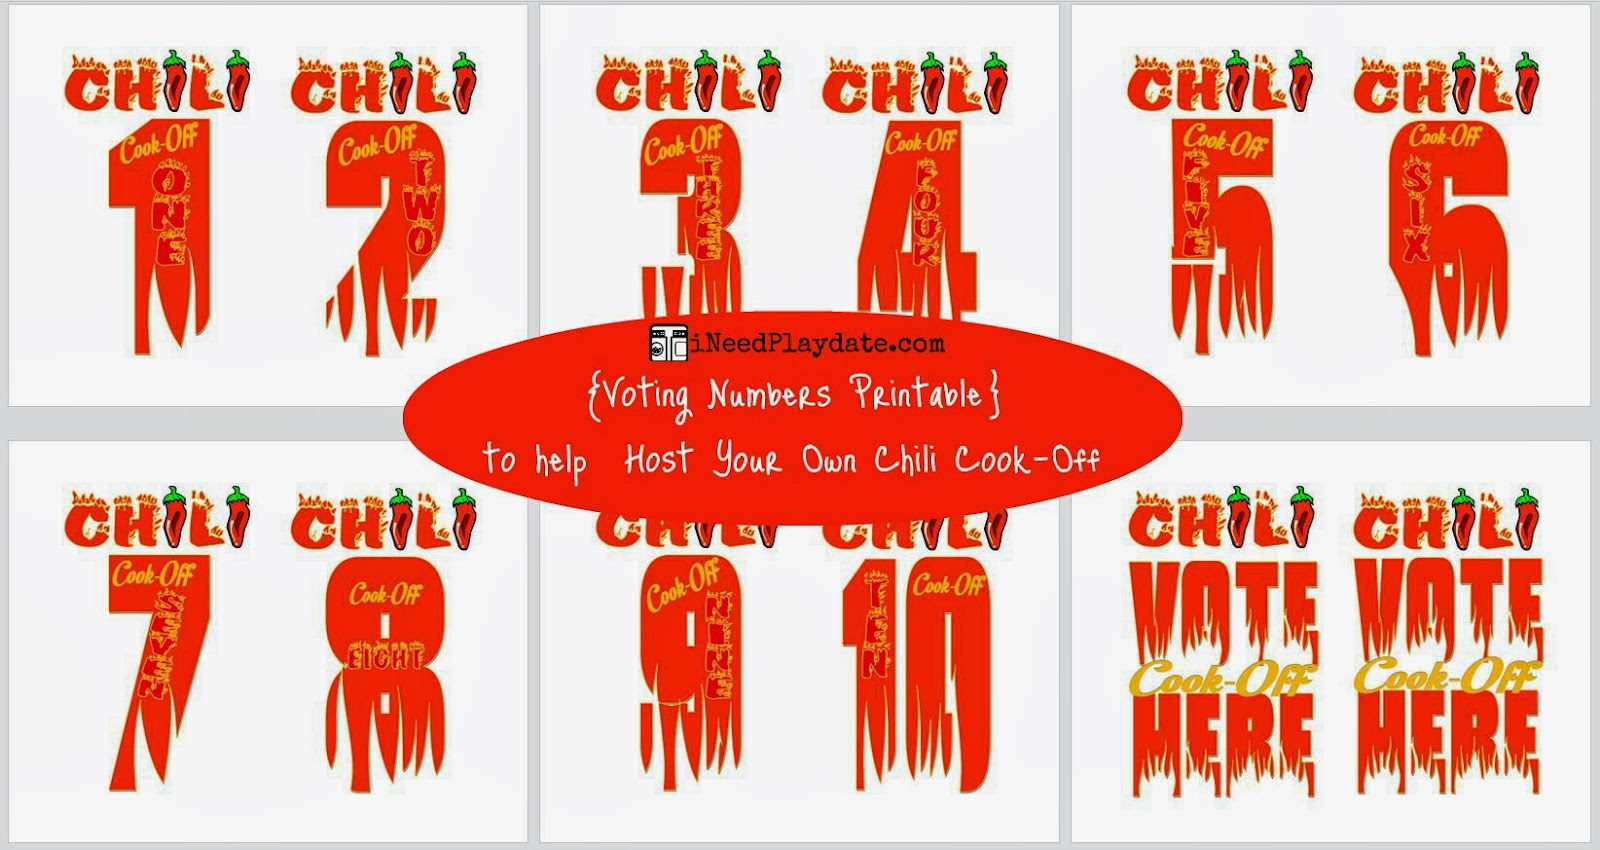 voting numbers for chili cook-off